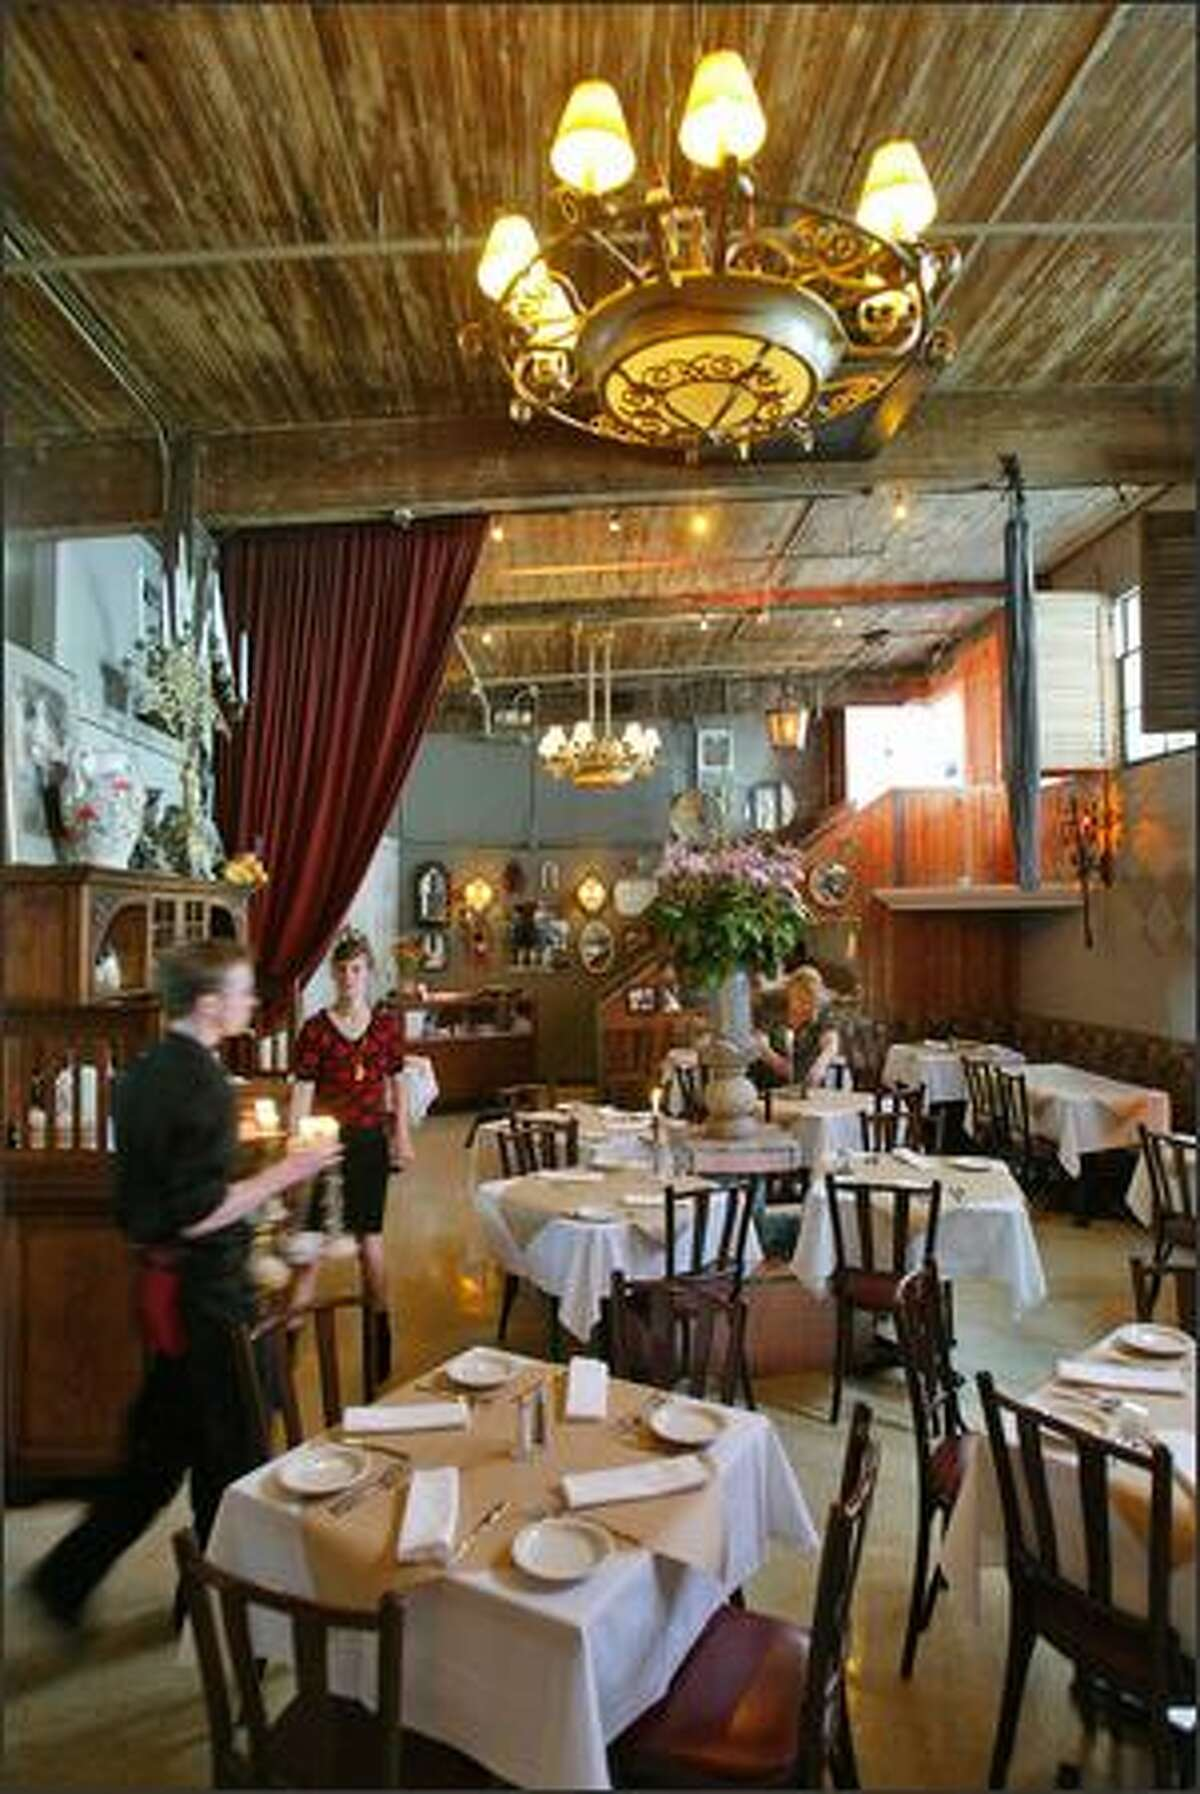 The dining room offers funky charm enhanced by an ornate chandelier, a huge sideboard and a vintage fountain.